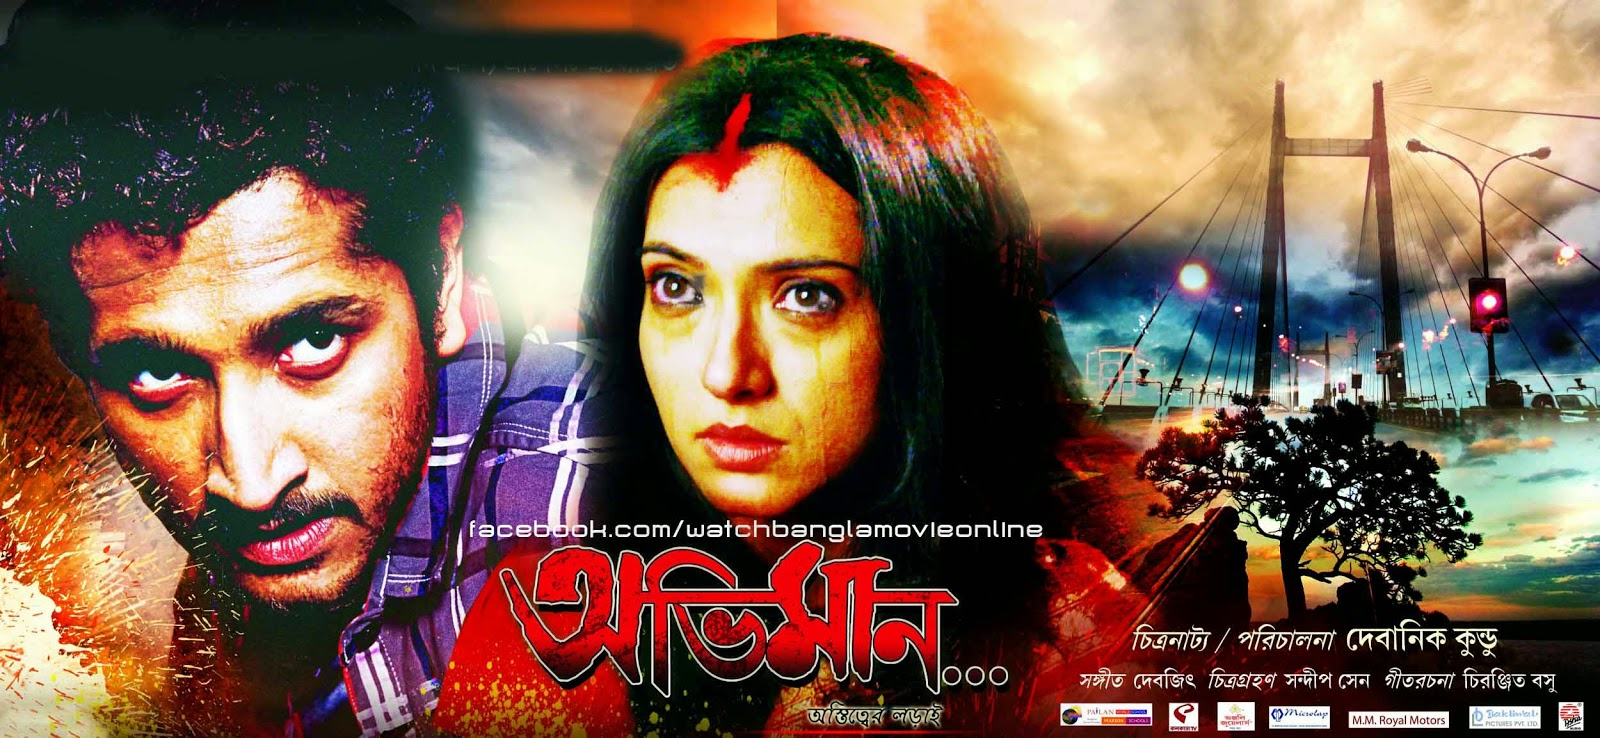 Hd Wallpaper Download New Bangla Bengali Full Movie -9088